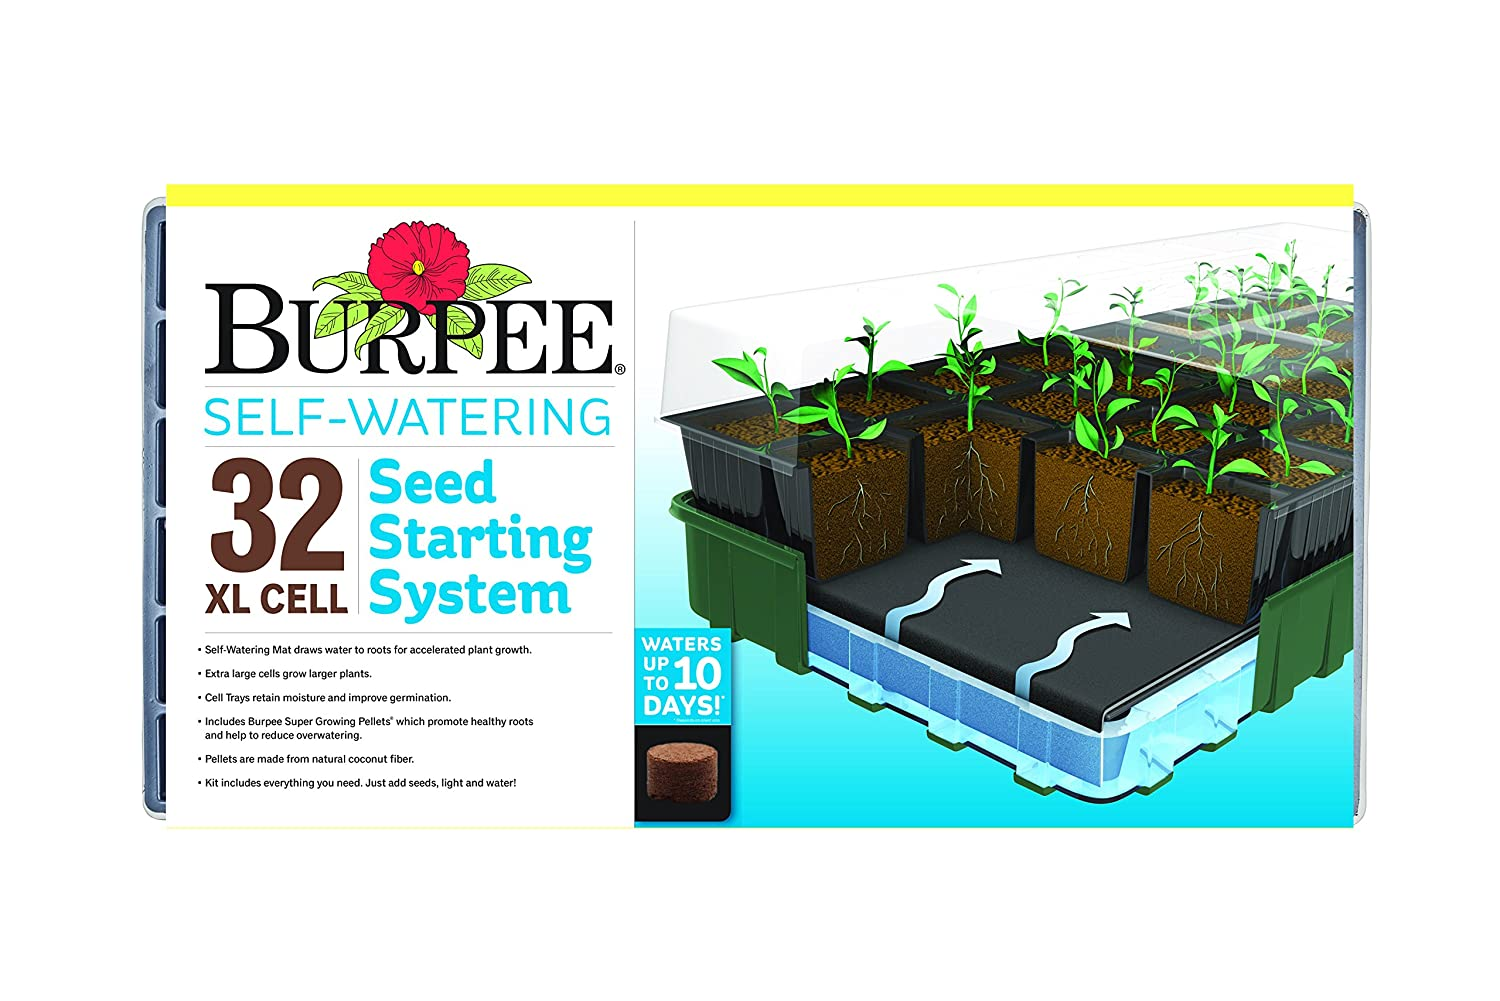 Burpee 32 Cell Xl Ultimate Self-Watering Seed Starting Kit